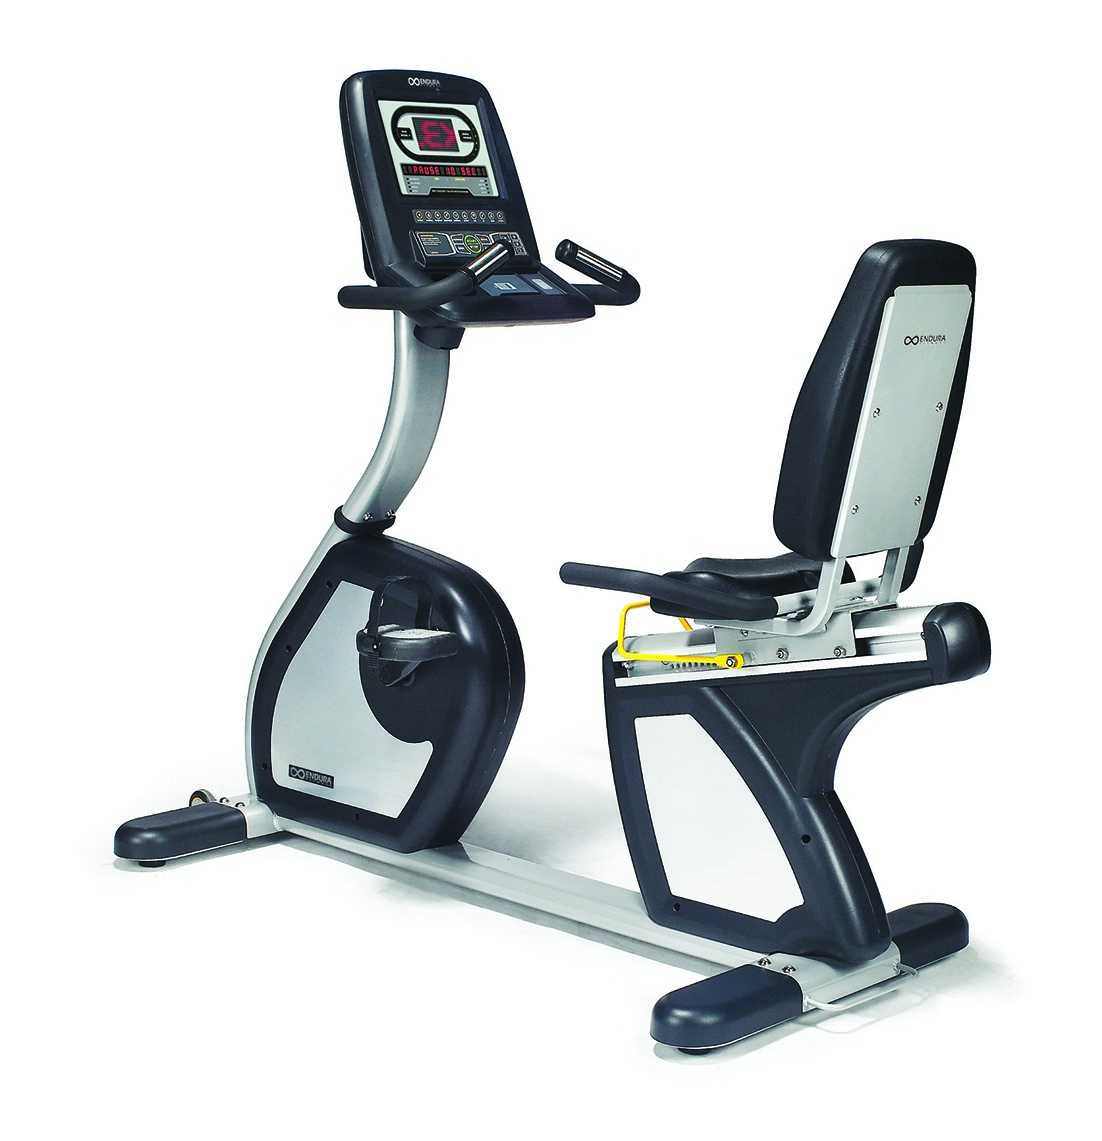 Endura Fitness Infinity Recumbent Cycle